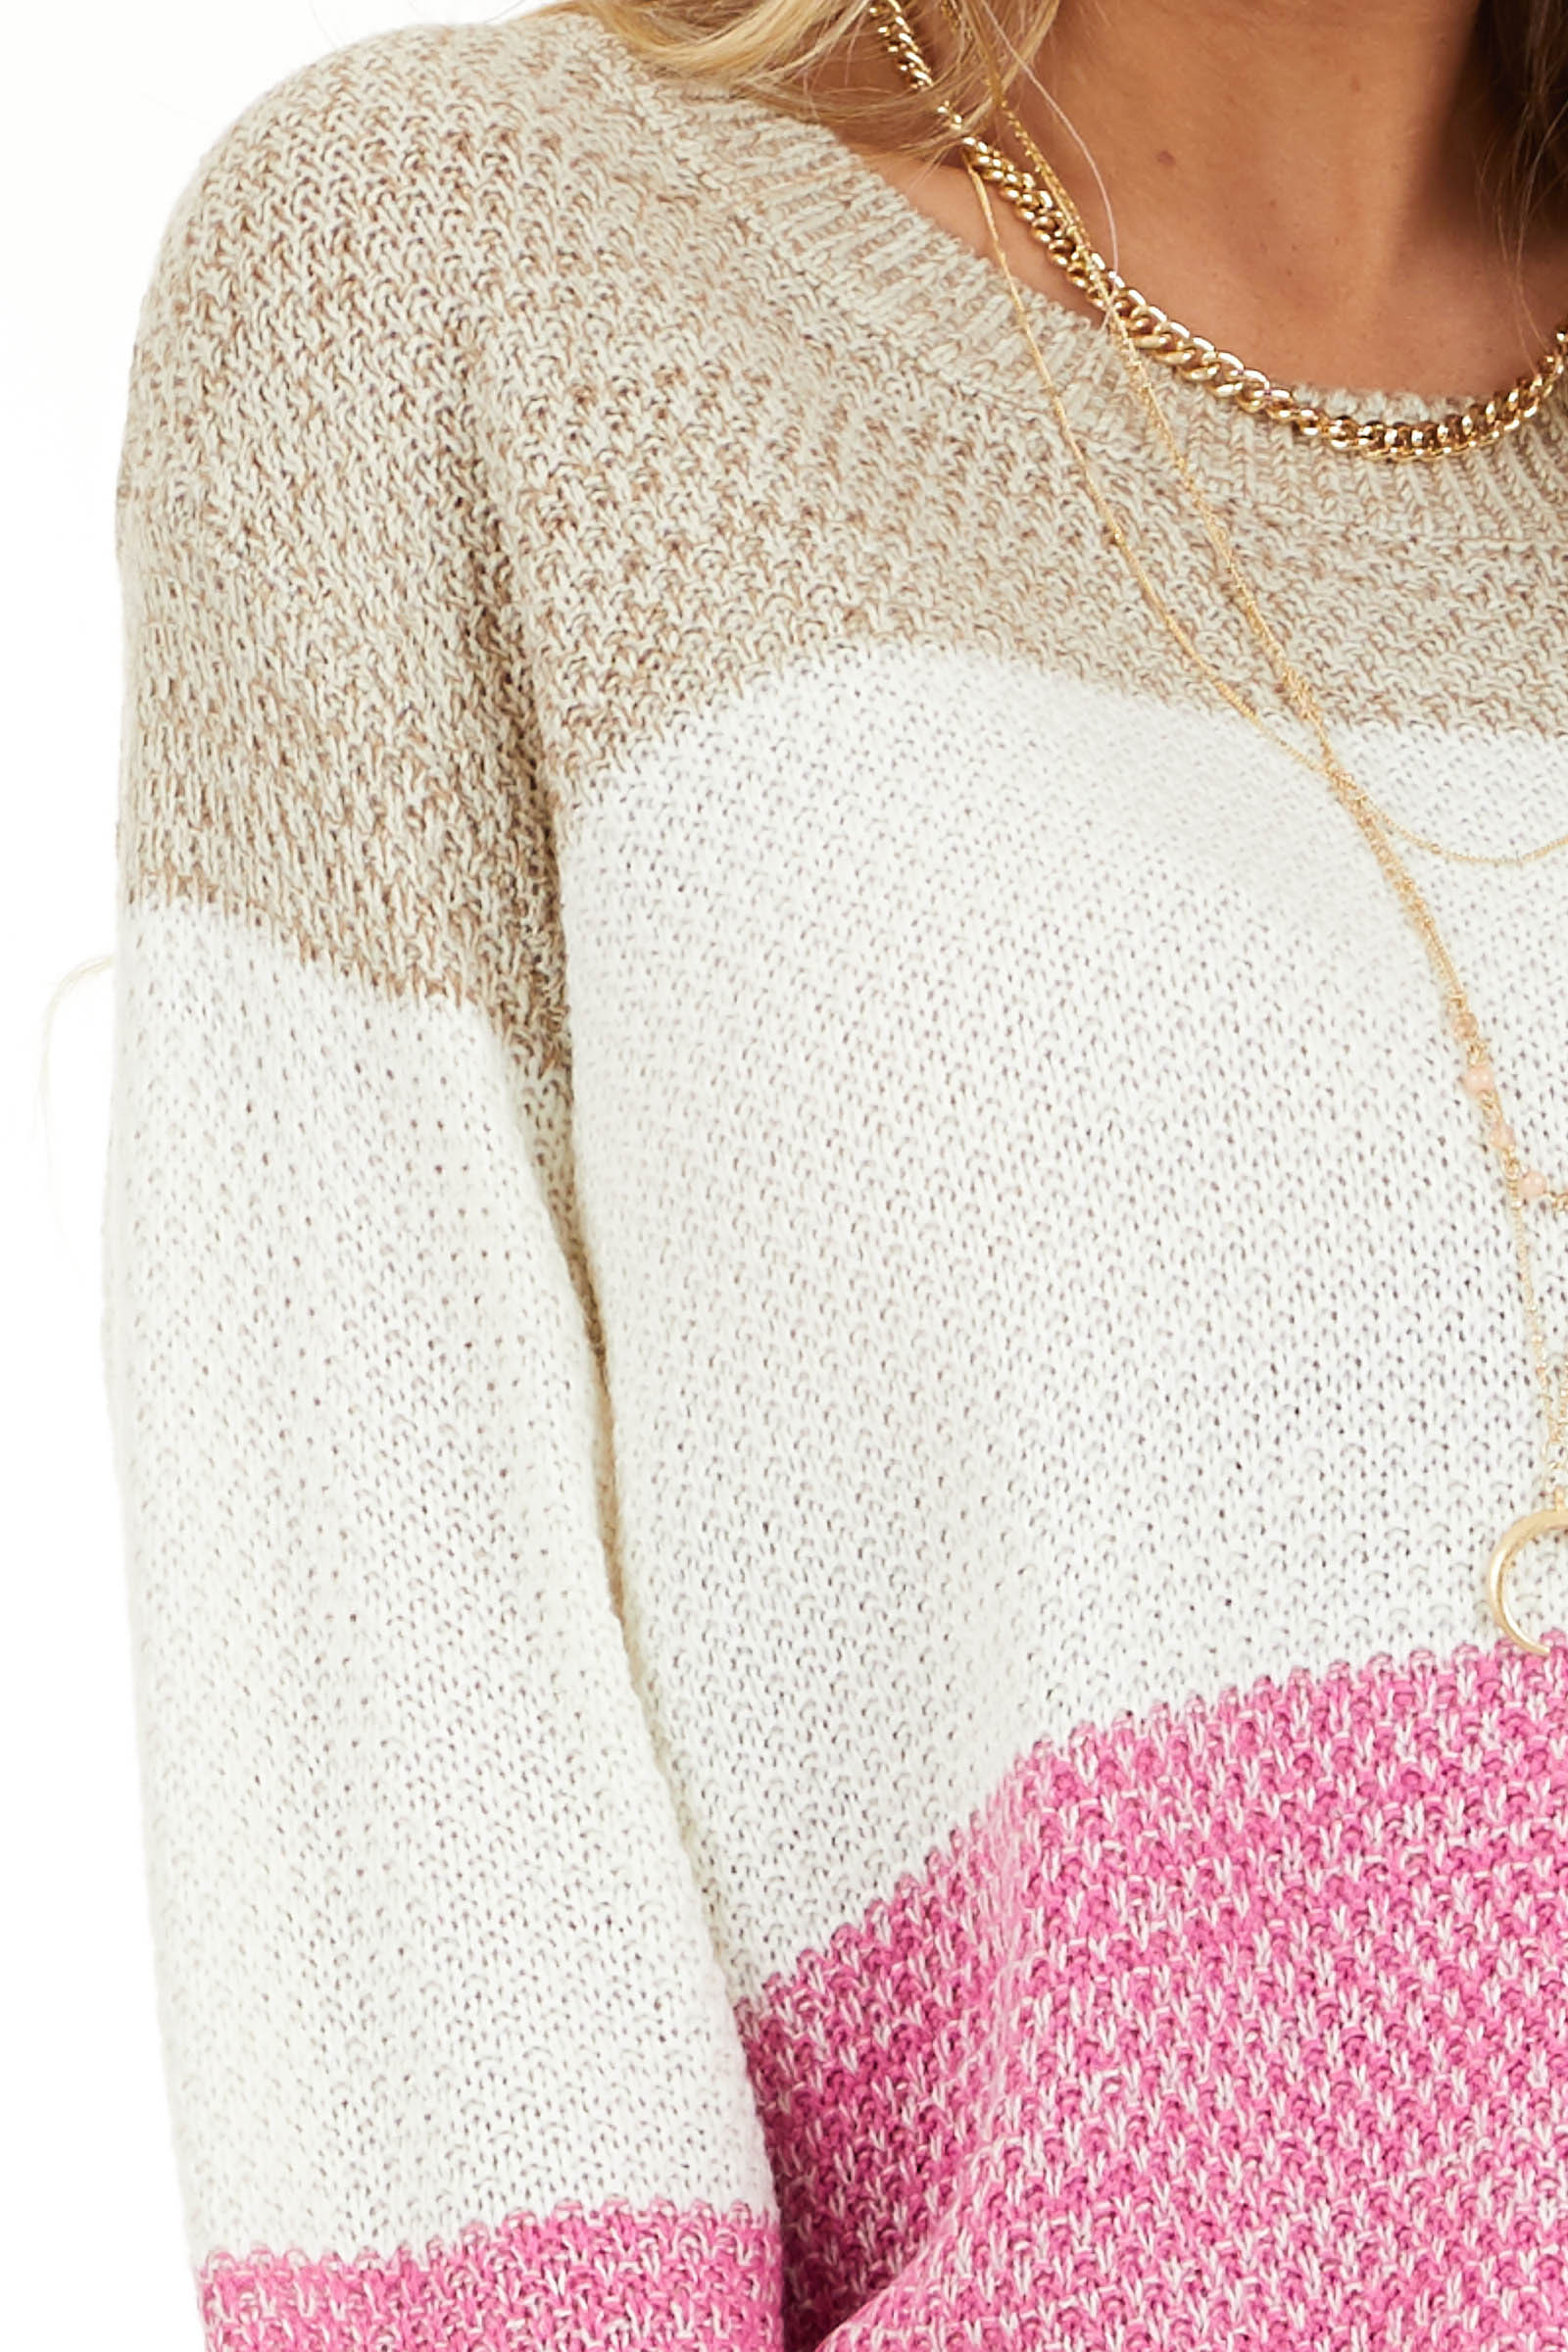 Fuchsia Multi Colored Striped Long Sleeve Knit Sweater detail